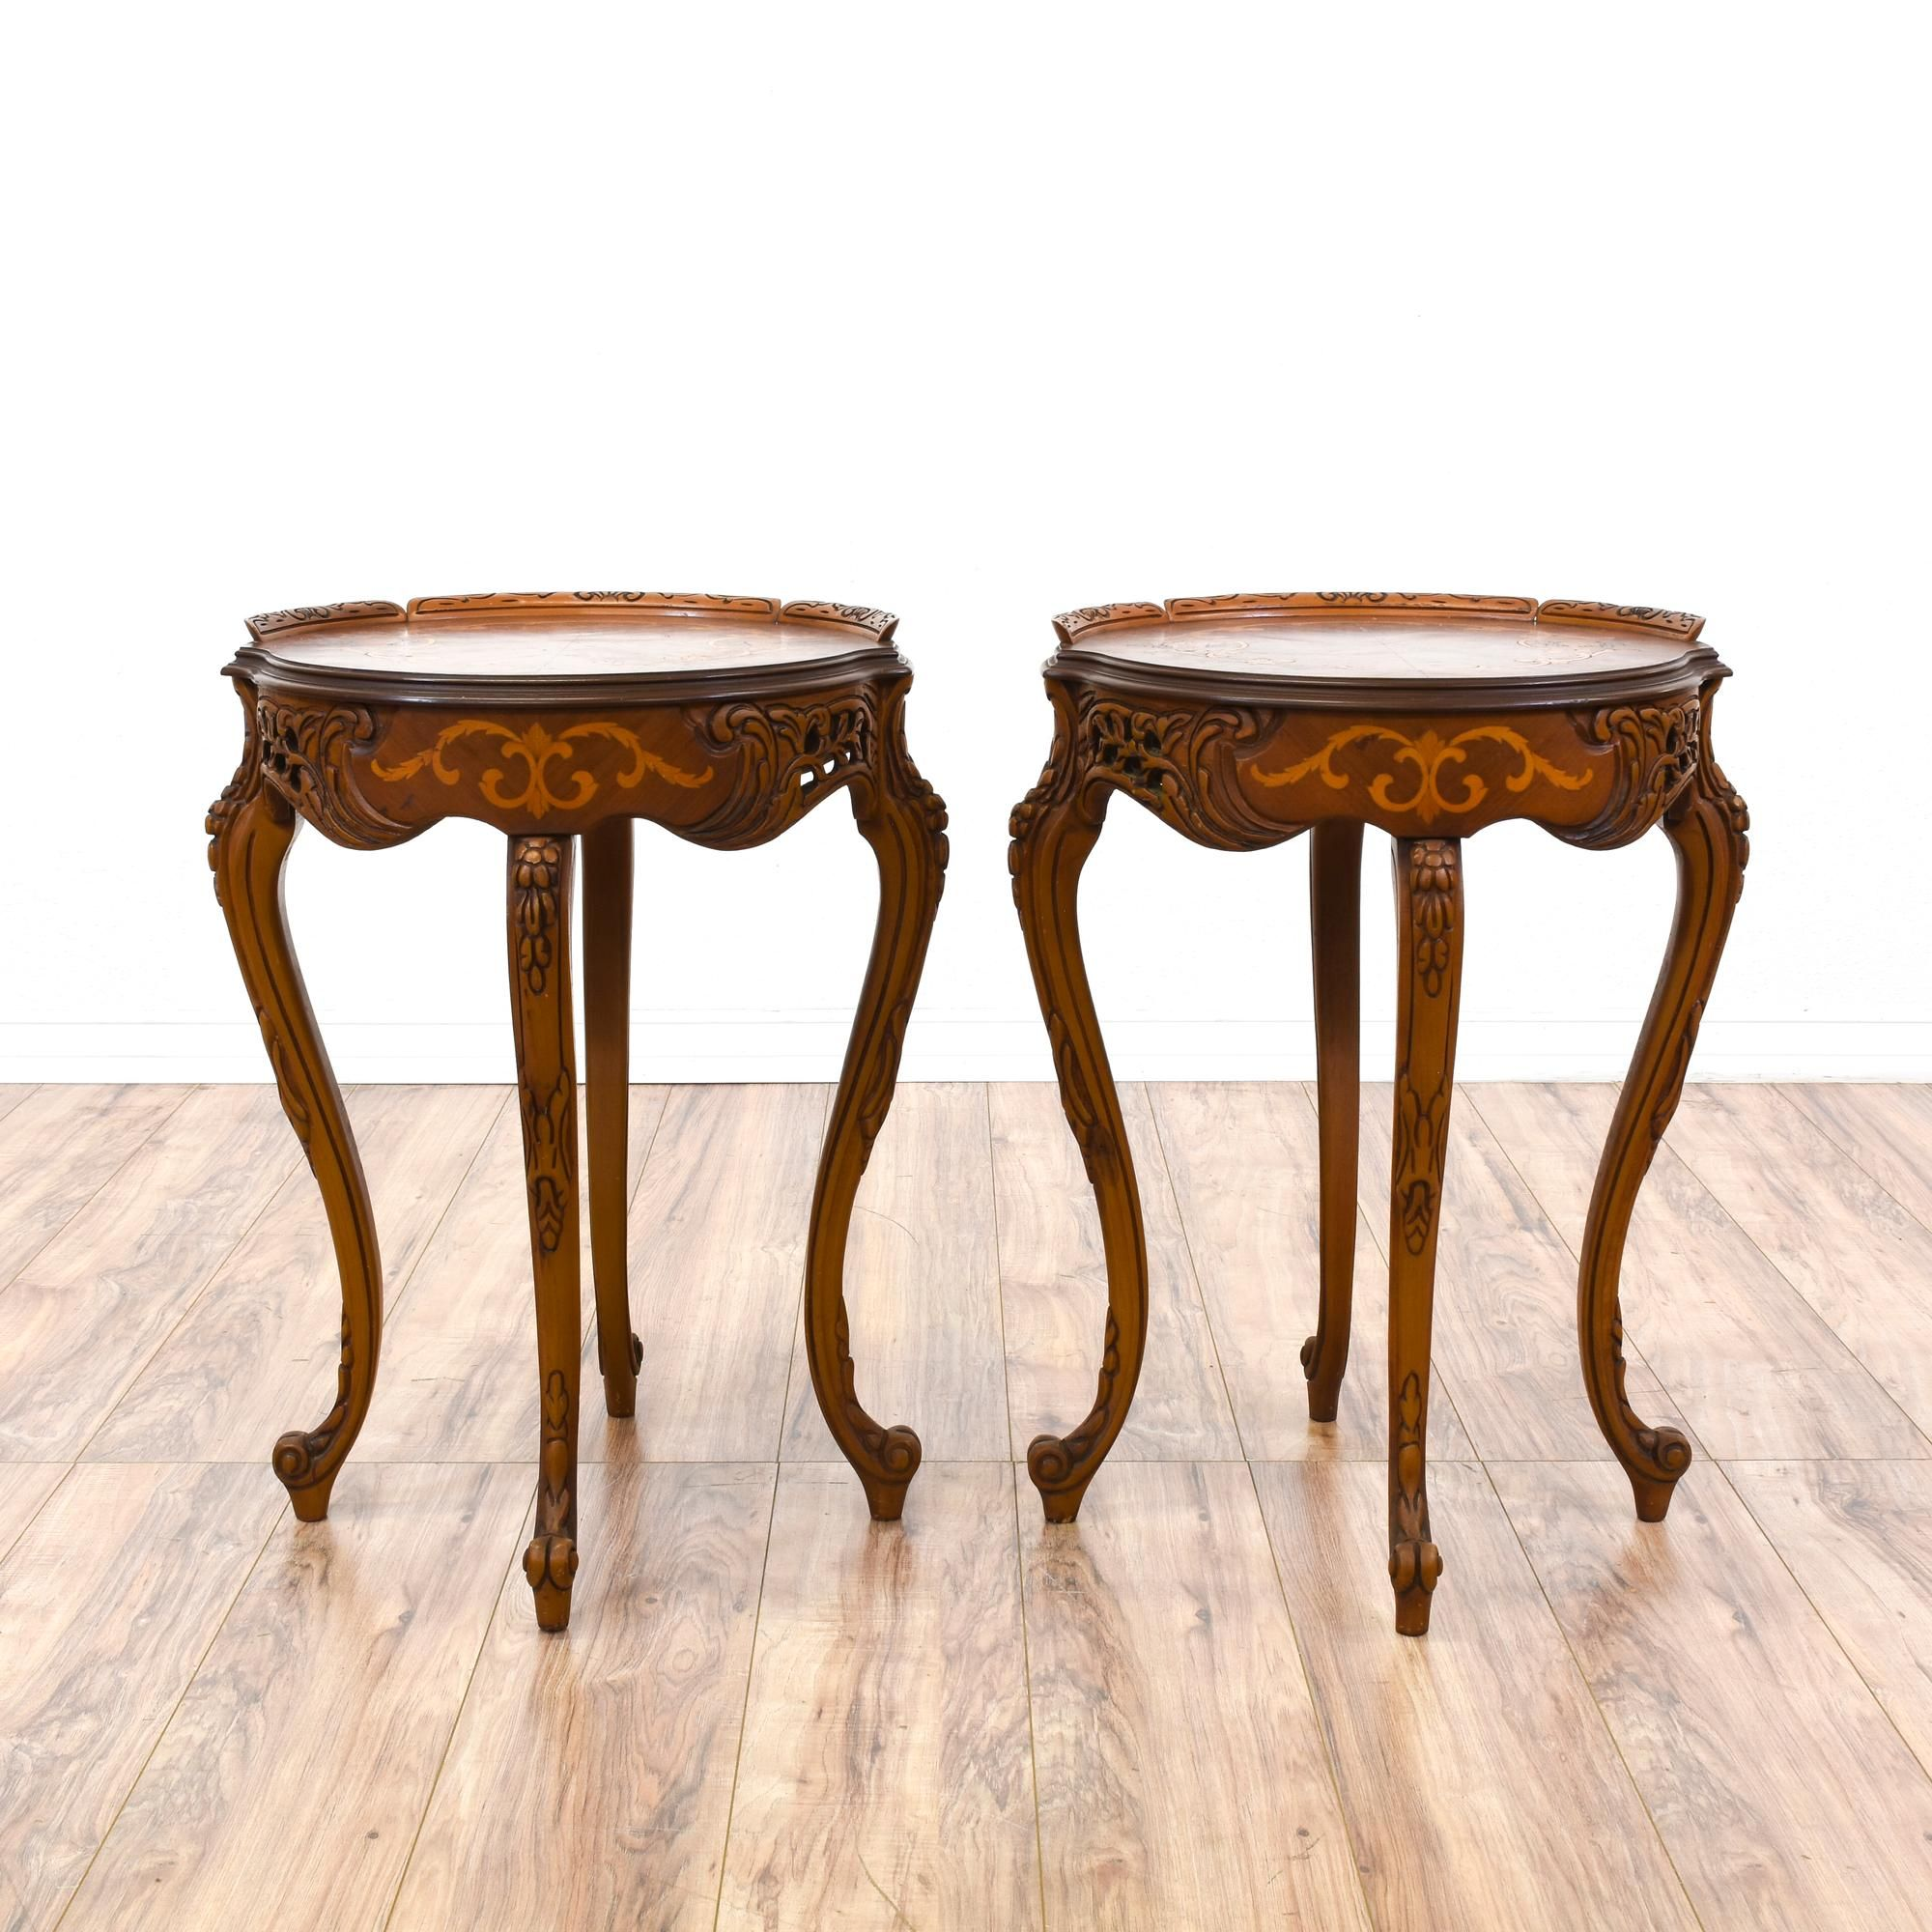 pair of victorian ornate carved inlay end tables | cherry finish